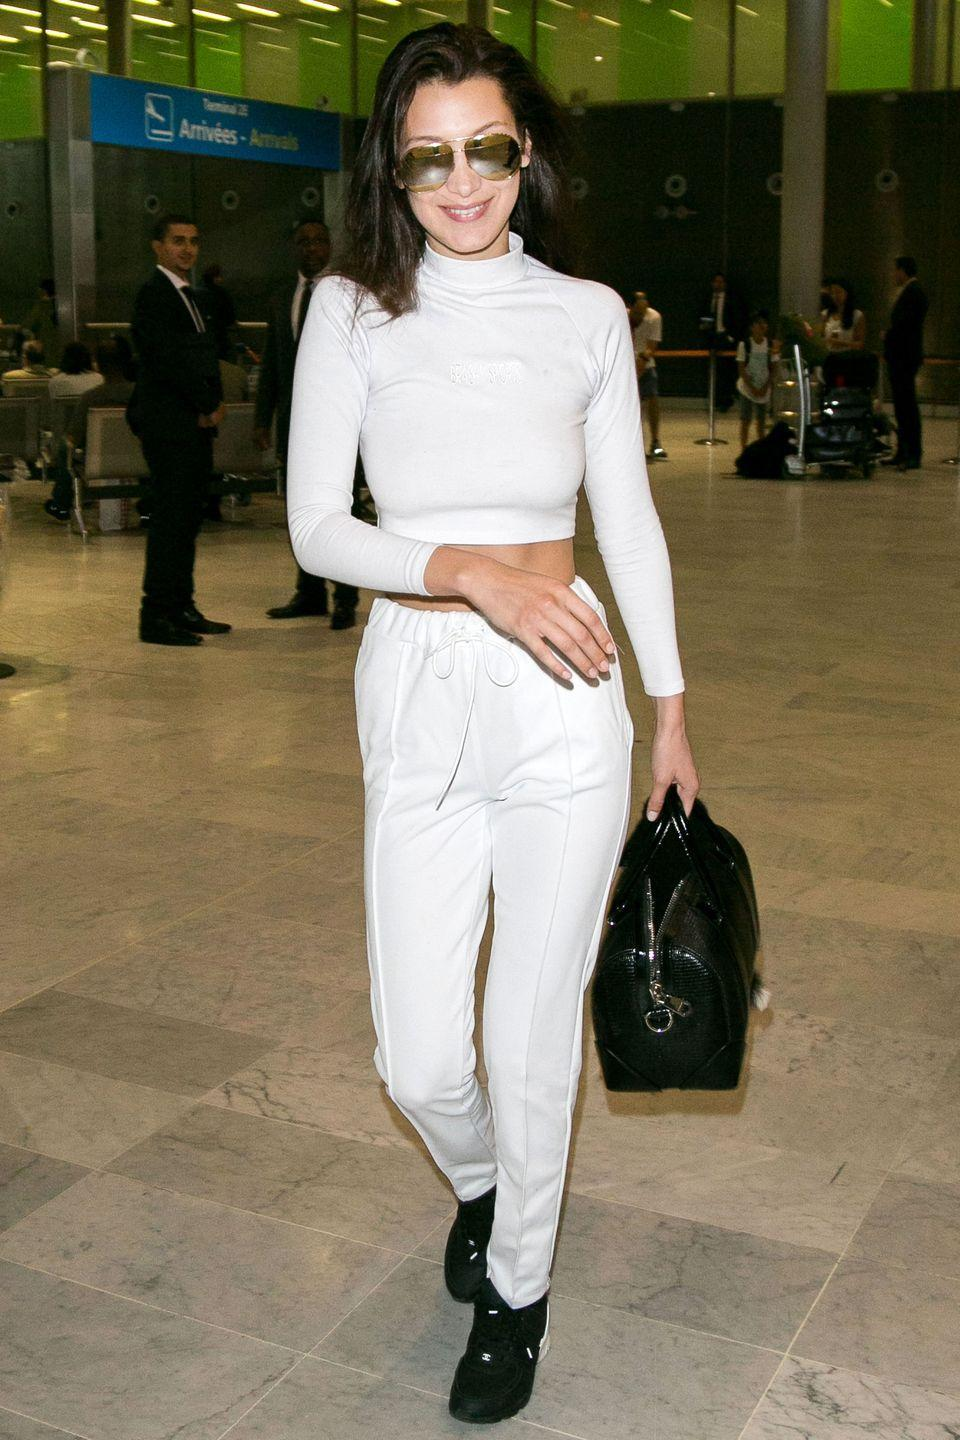 <p>In white turtleneck, white jeans, black bag, sneakers and aviators at Charles-de-Gaulle airport in Paris, France.</p>